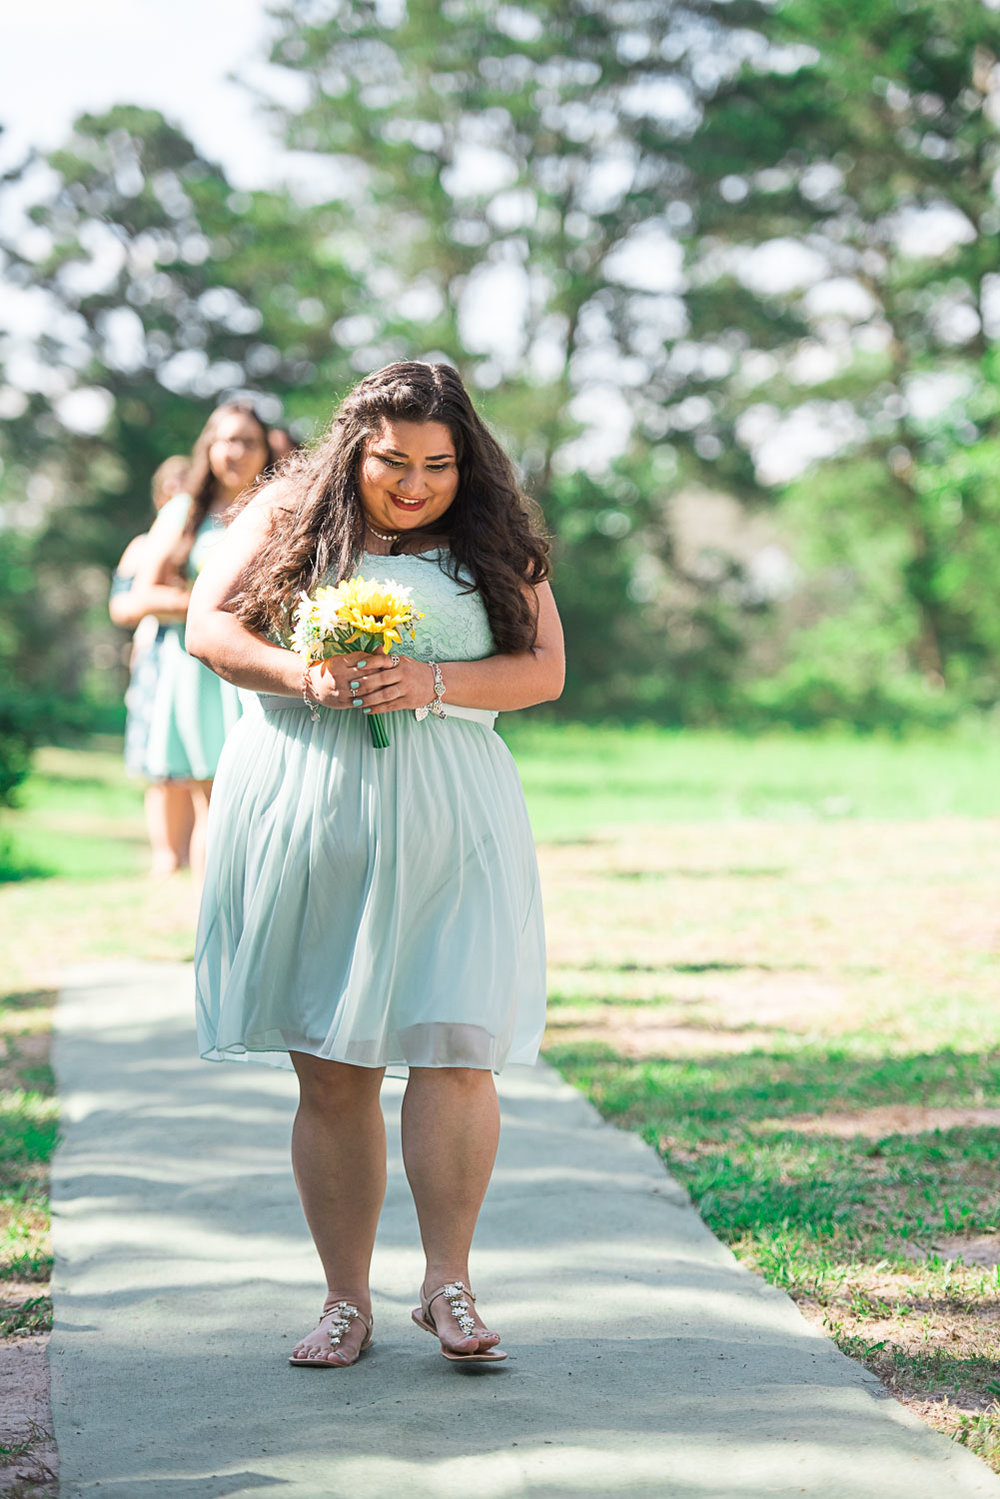 44 bridesmaid at texas farm wedding.jpg